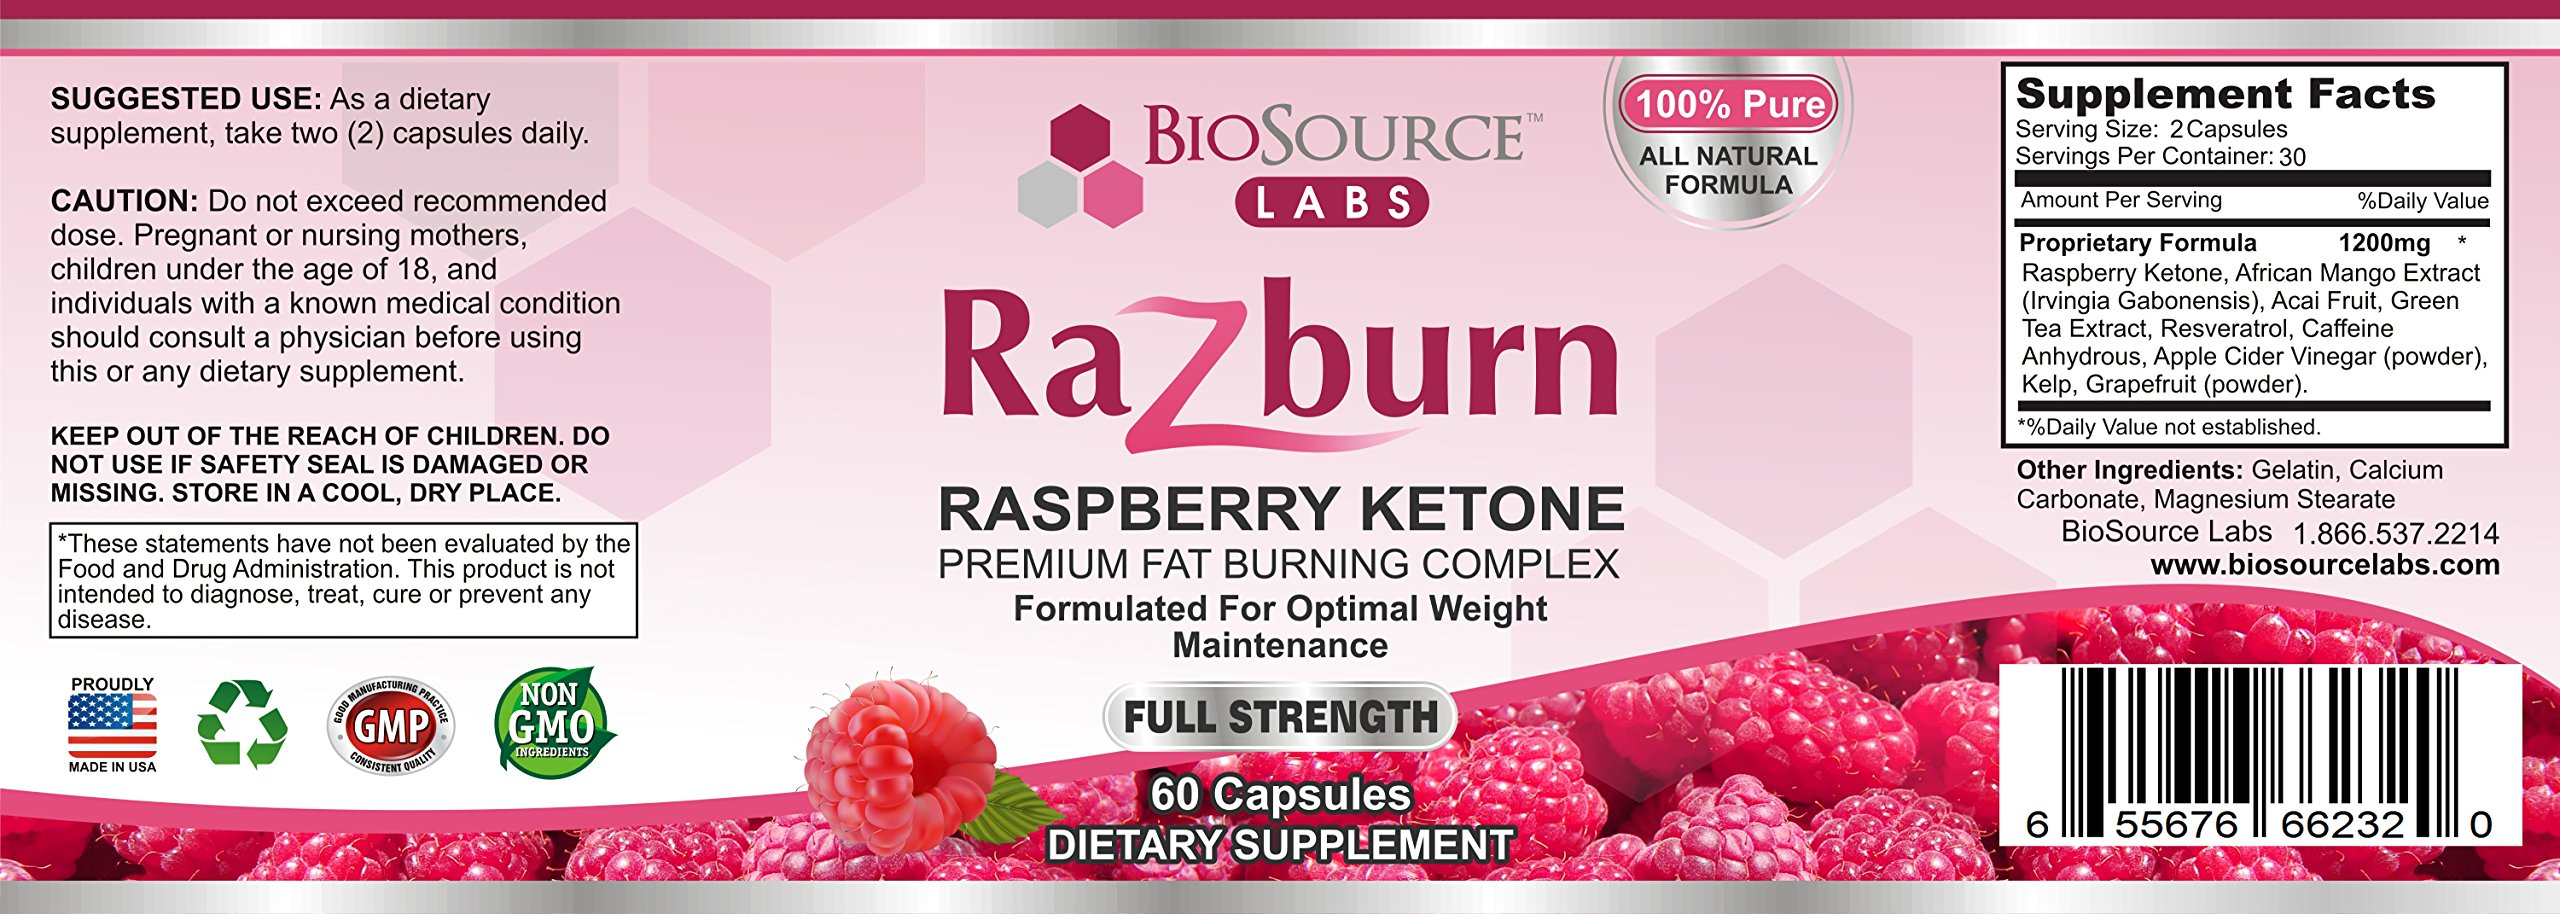 BioSource Labs Razburn 100% Pure Raspberry Ketones Complex - All-Natural Thermogenic Weight Loss Pills with Caffeine and Green Tea Extract for Men & Women - (60 Vegetarian Capsules) by BioSource Labs